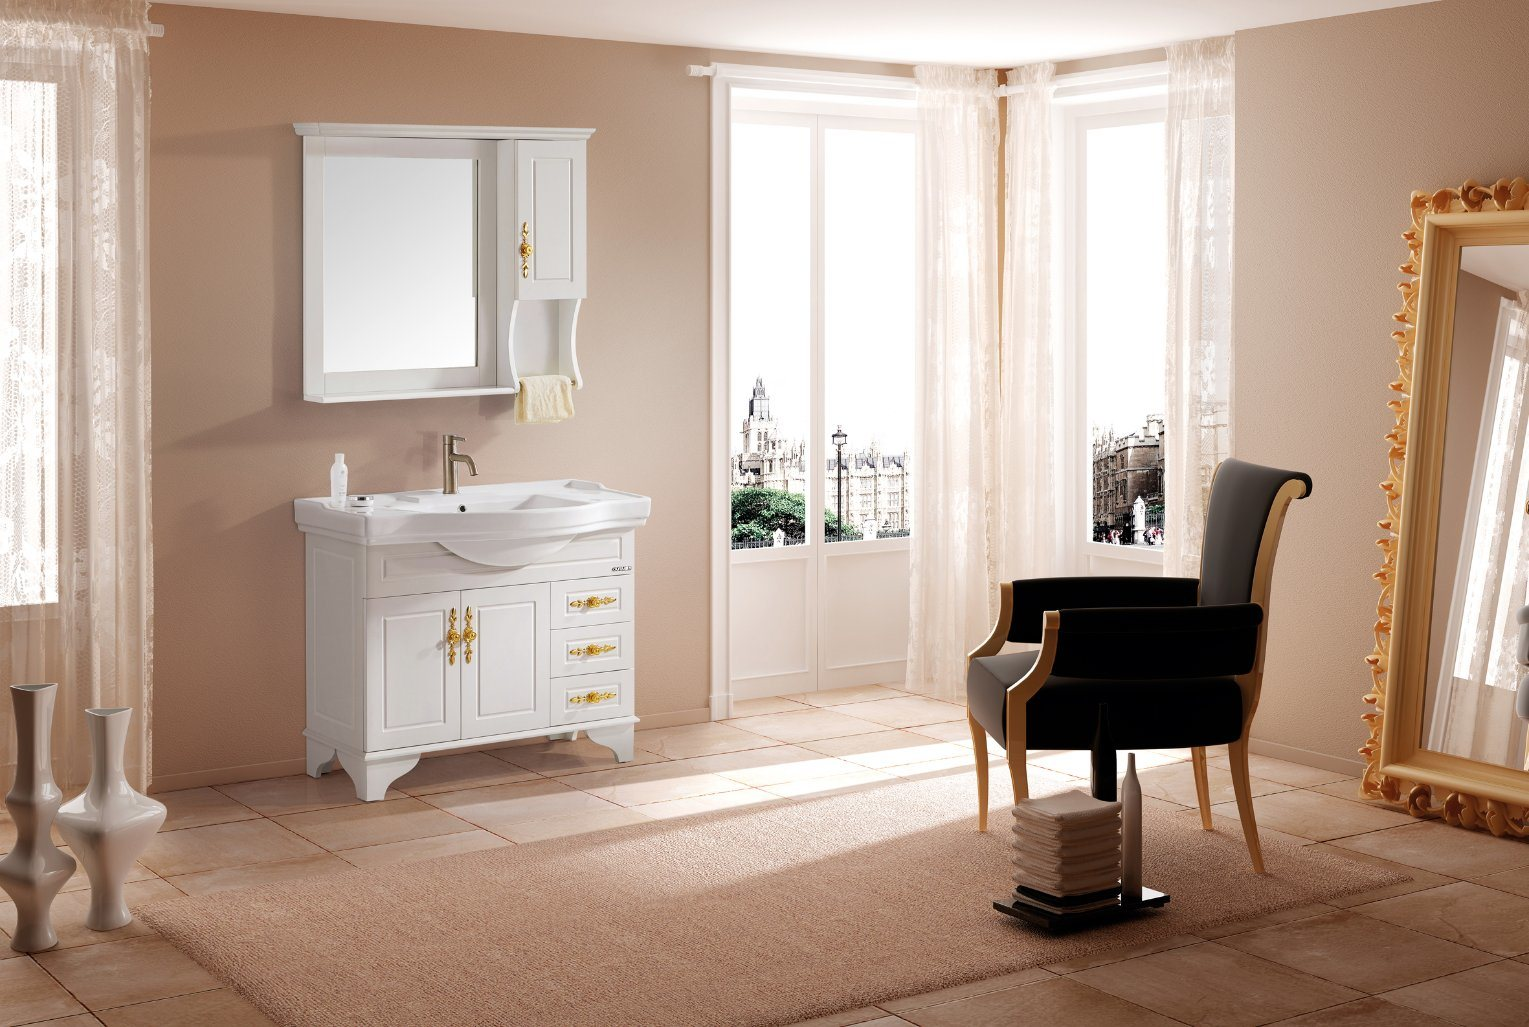 China Living Room Modern Vanity Cabinets Set Bathroom Cabinet Purchase Online Furniture Bathroom Vanity Ot1913 China Bathroom Cabinet Solid Wood